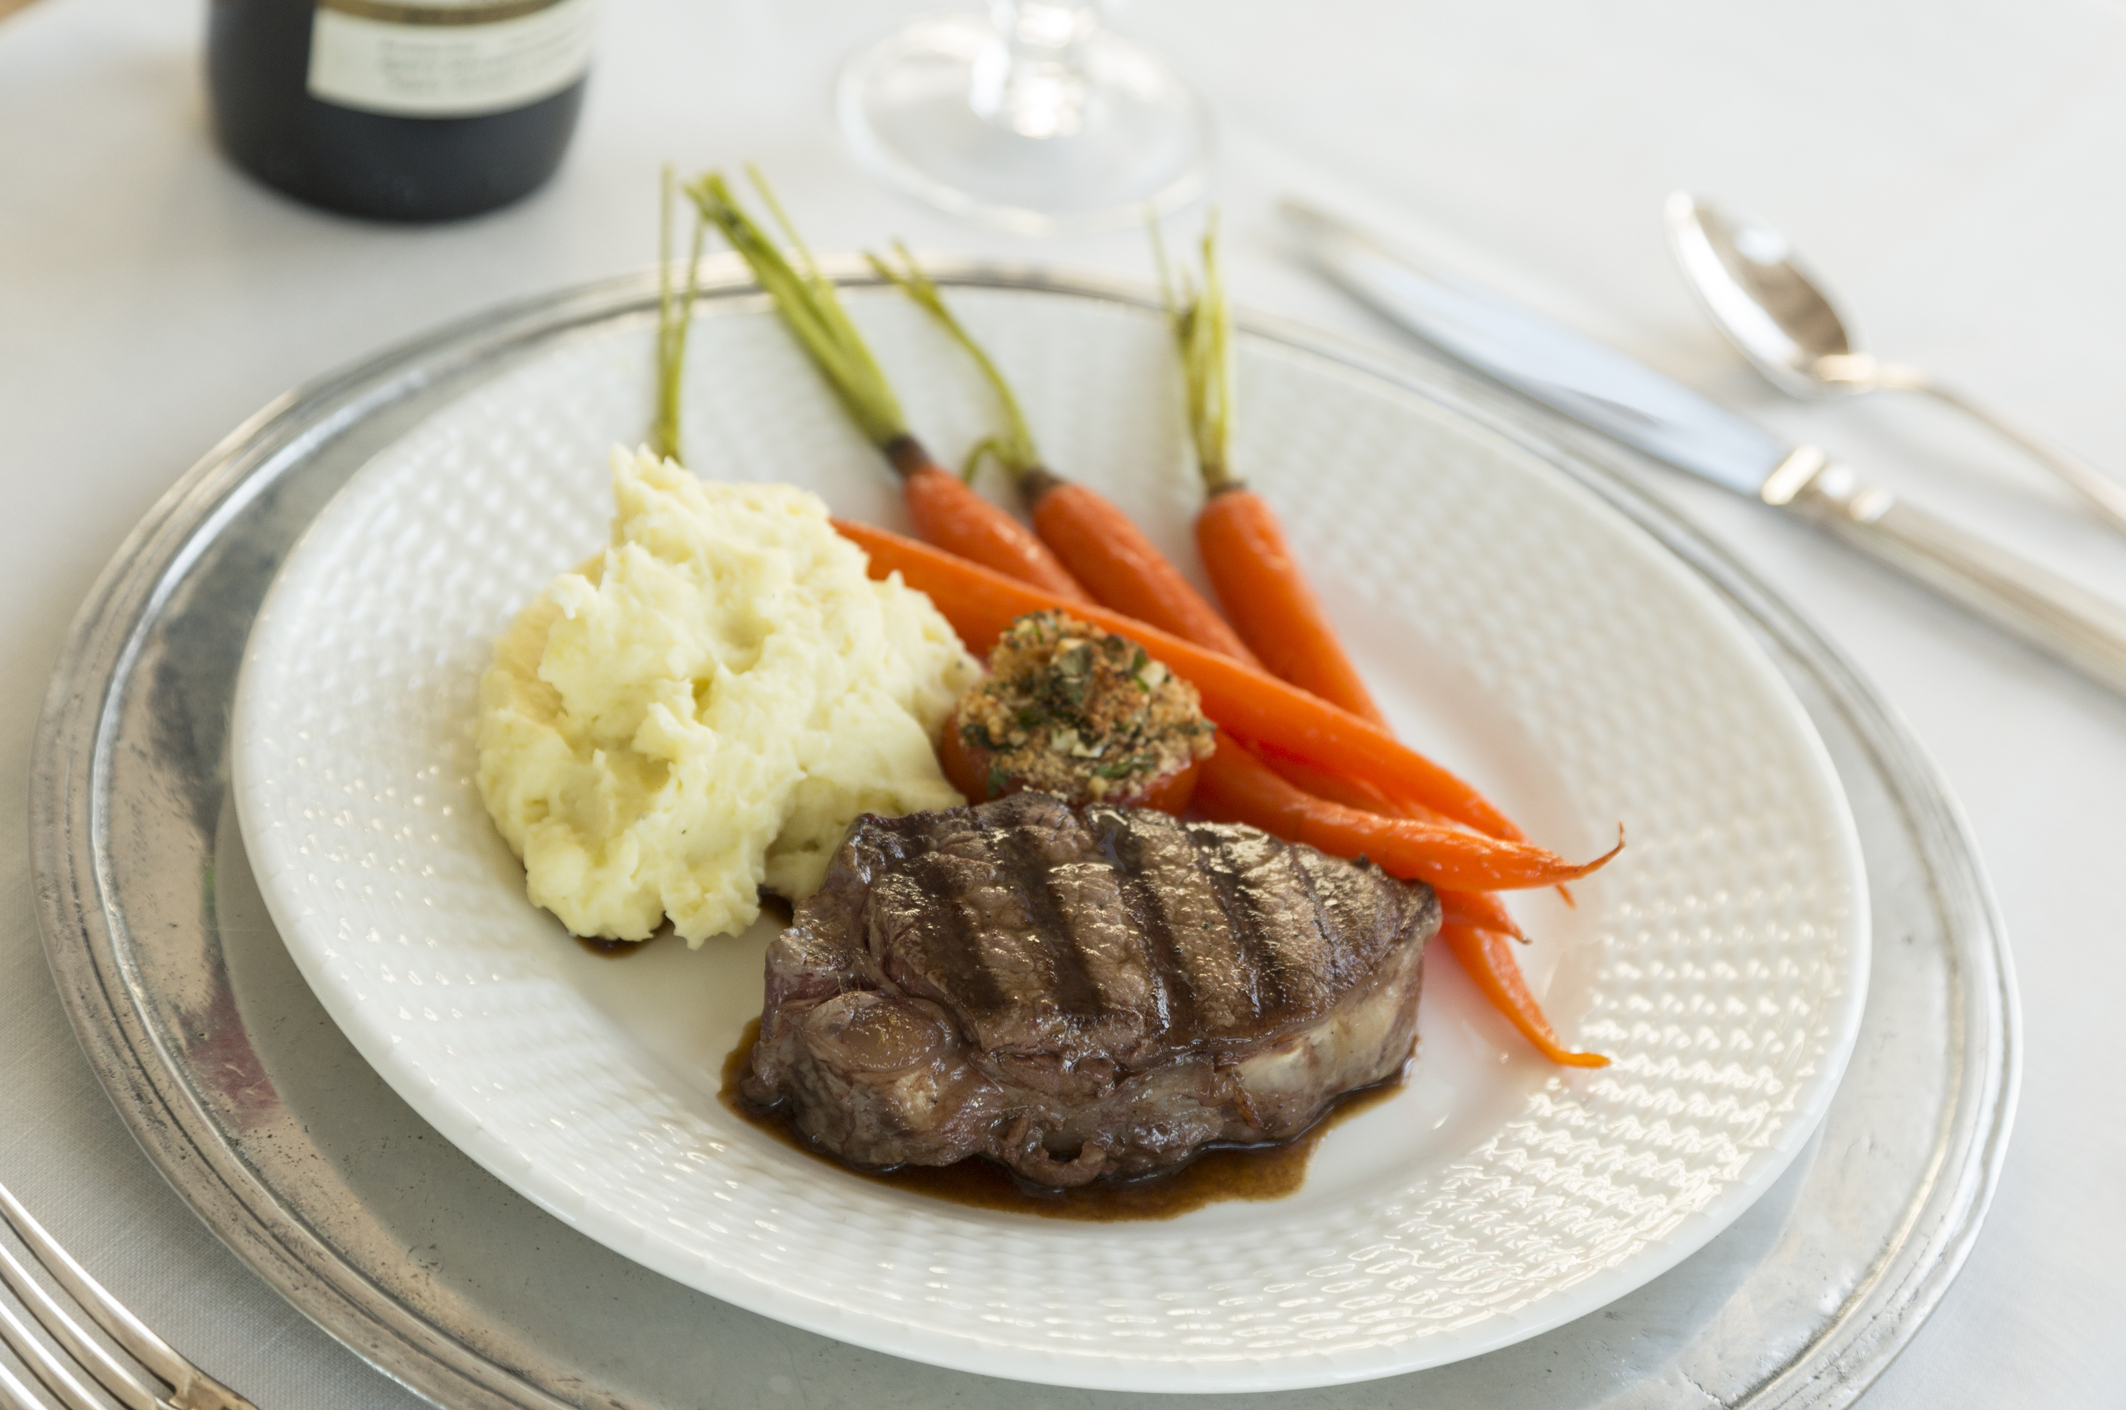 Beef steak with carrots, mashed potatoes and stuffed tomato